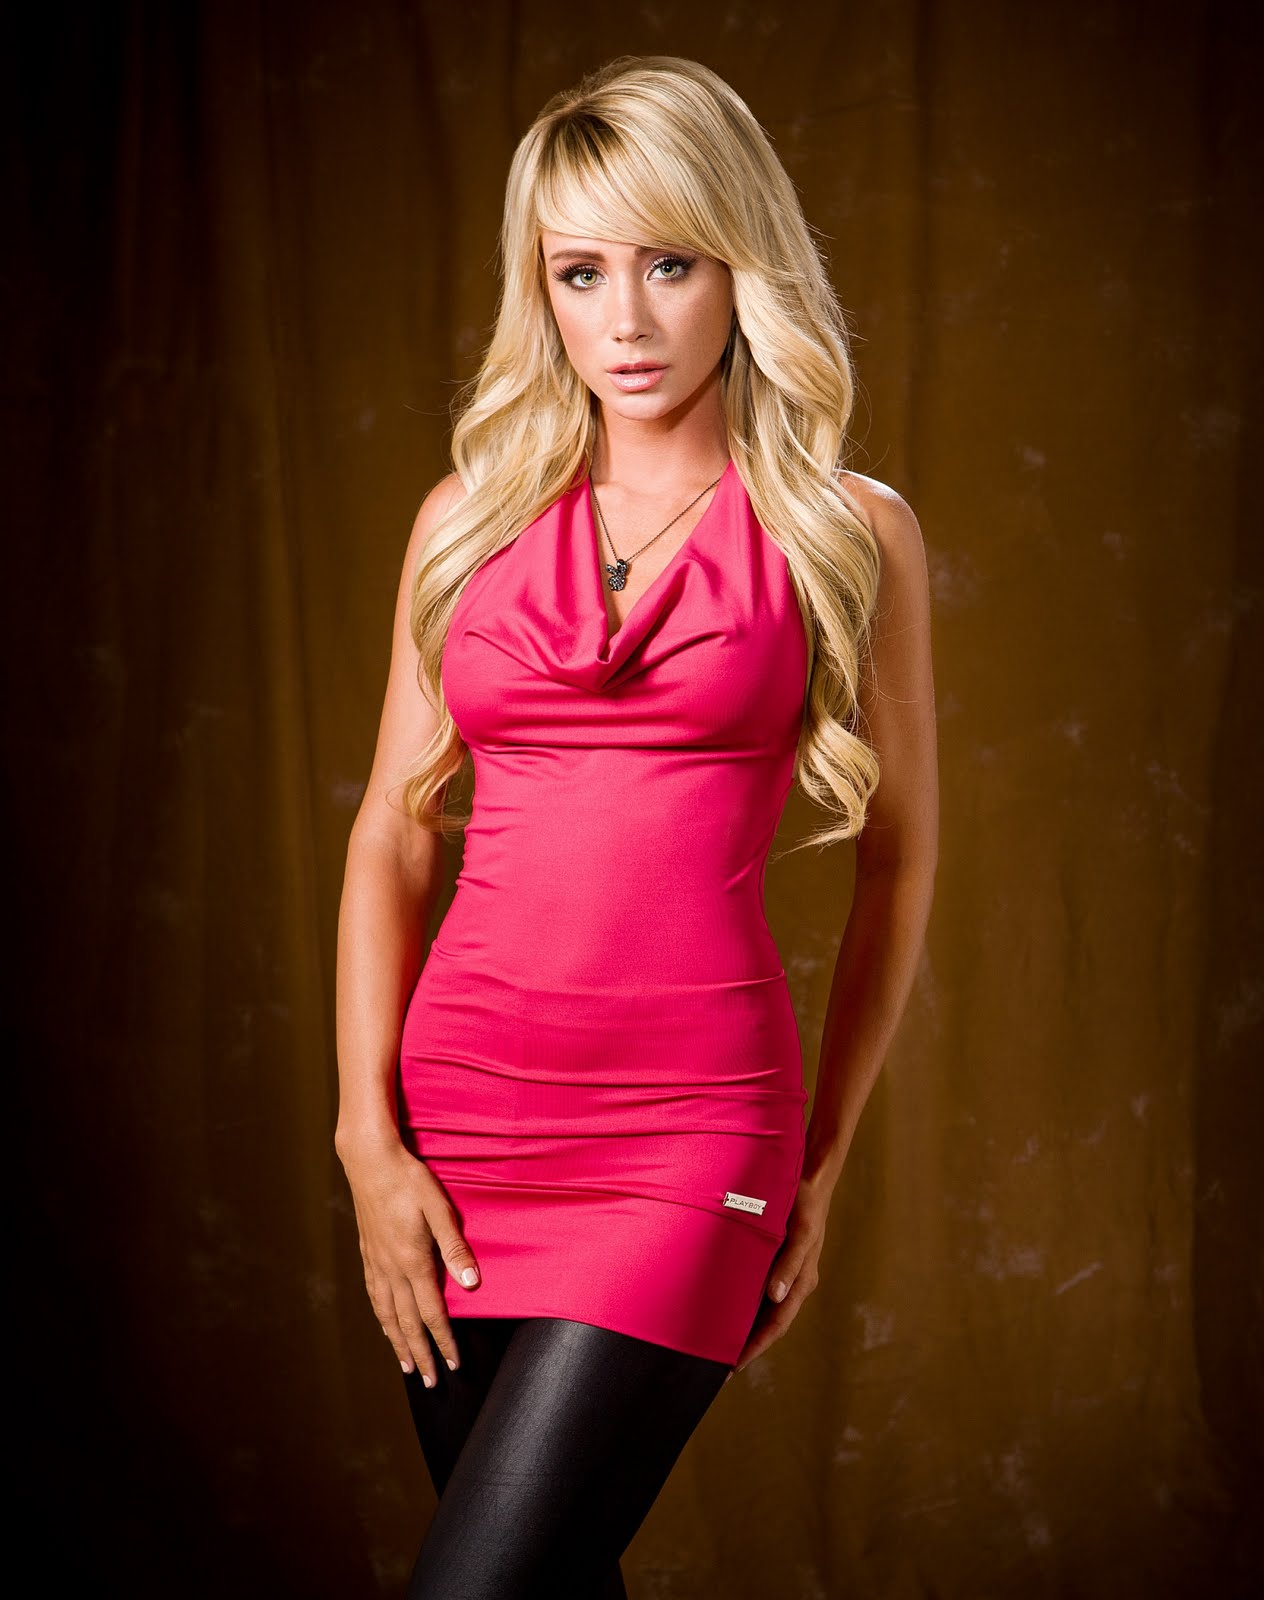 Sara Jean Underwood - Hot Wallpapers